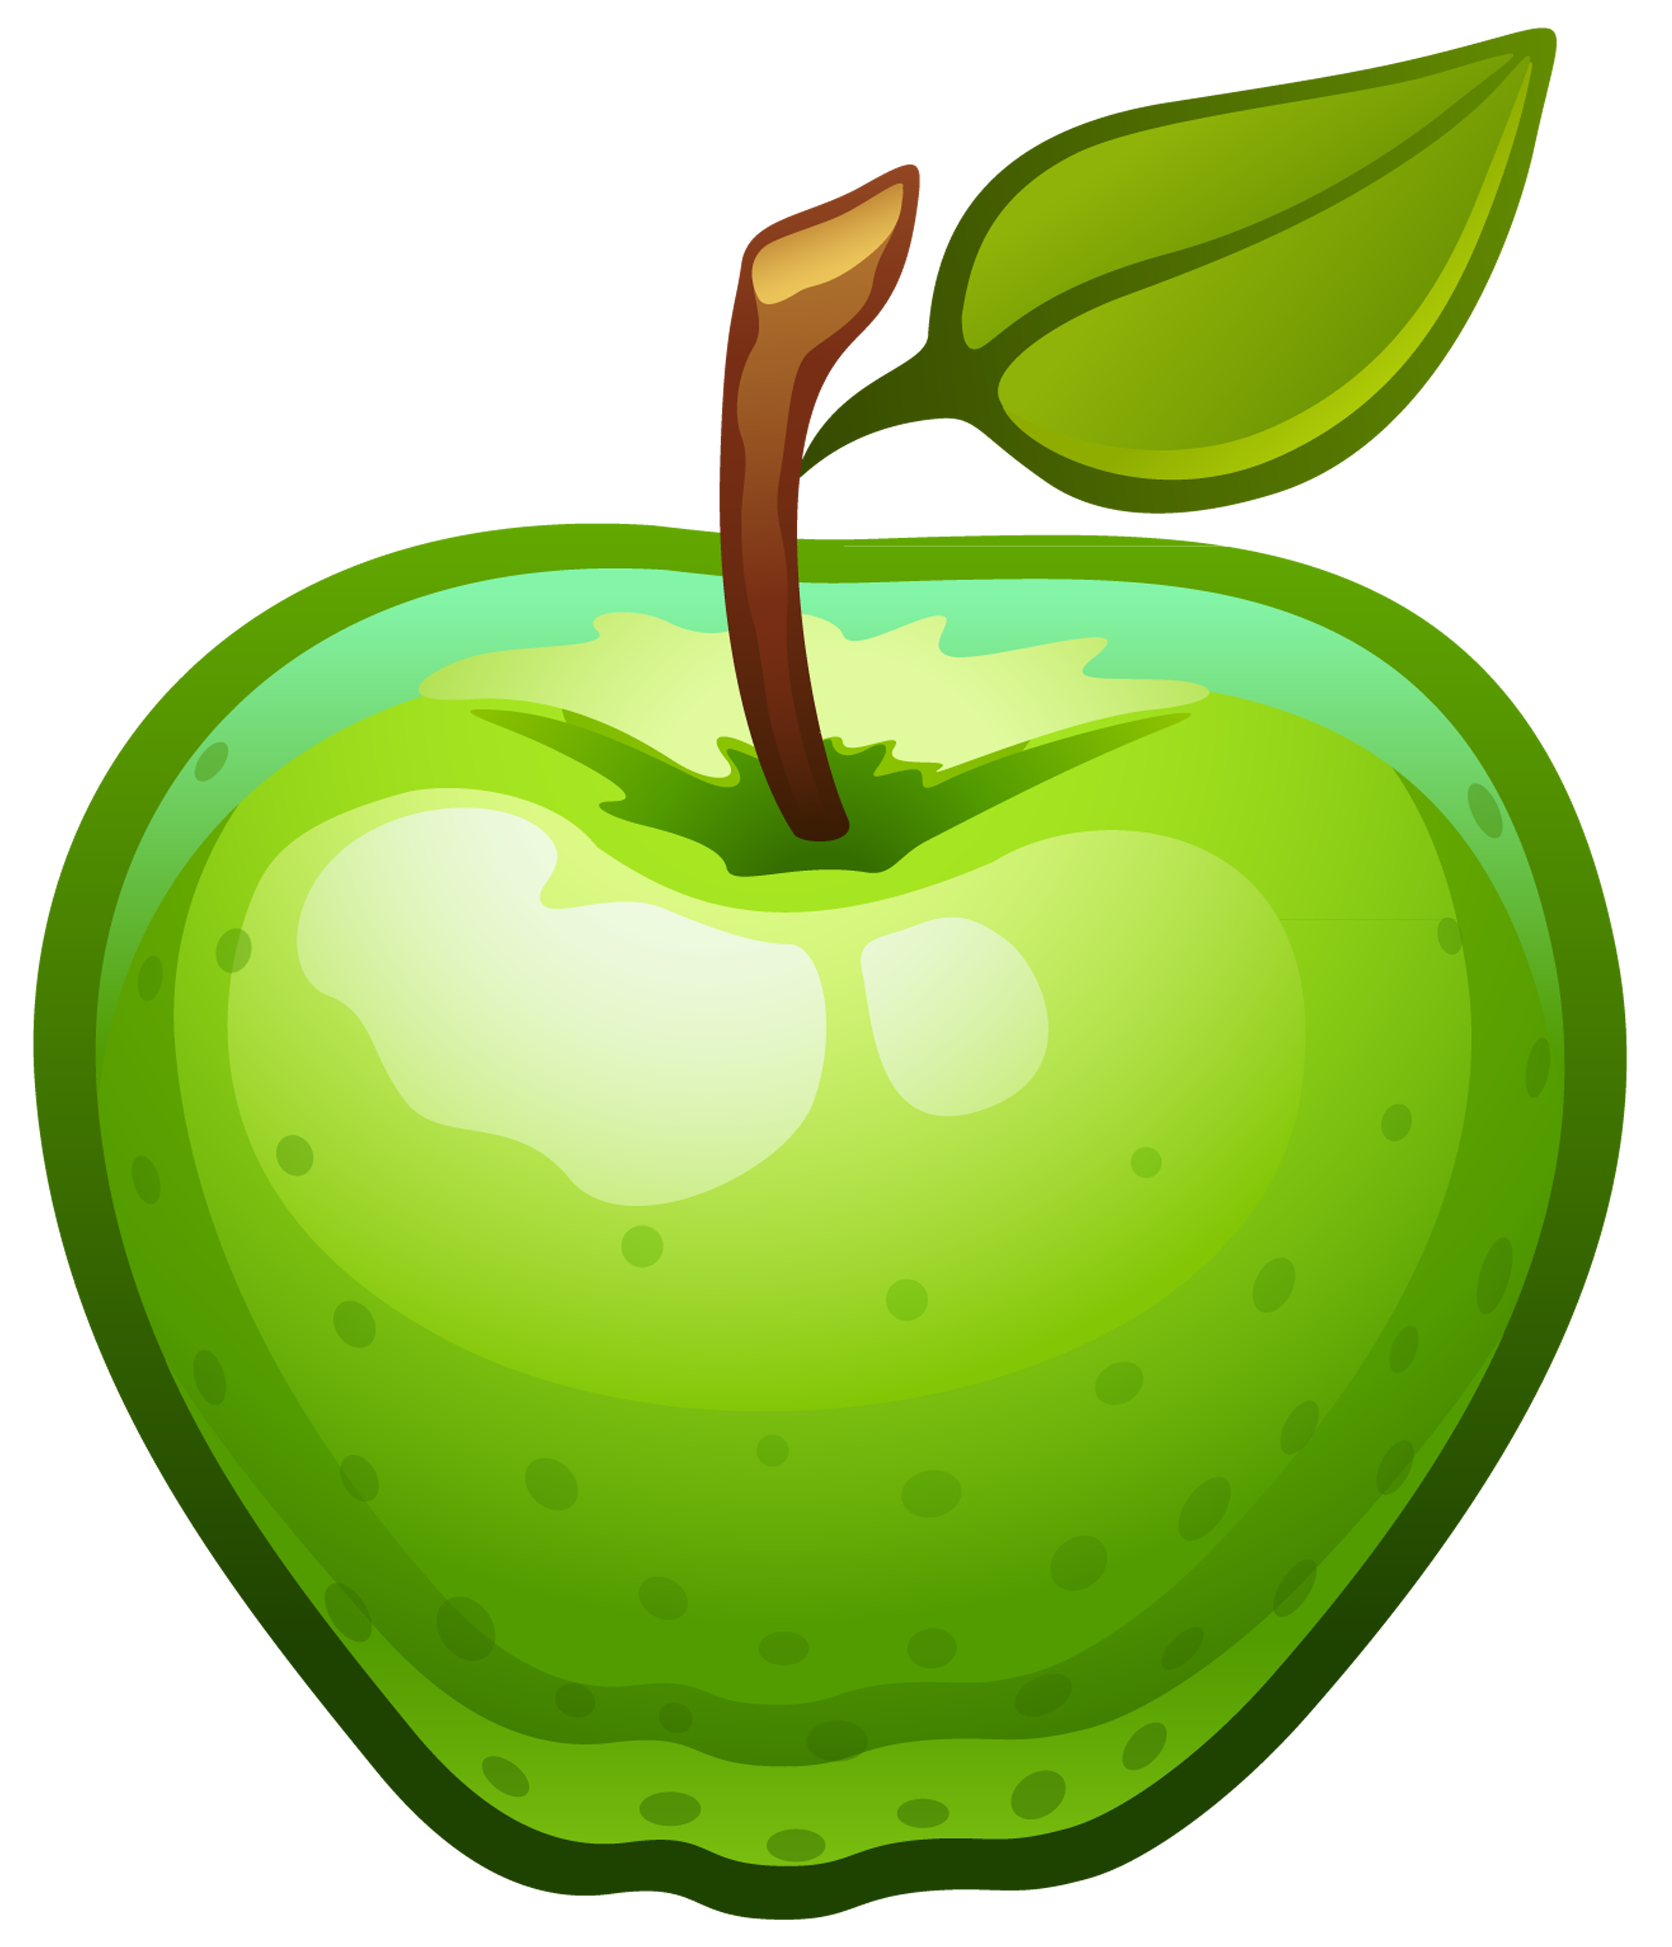 Picture clipart green. October apples clip art